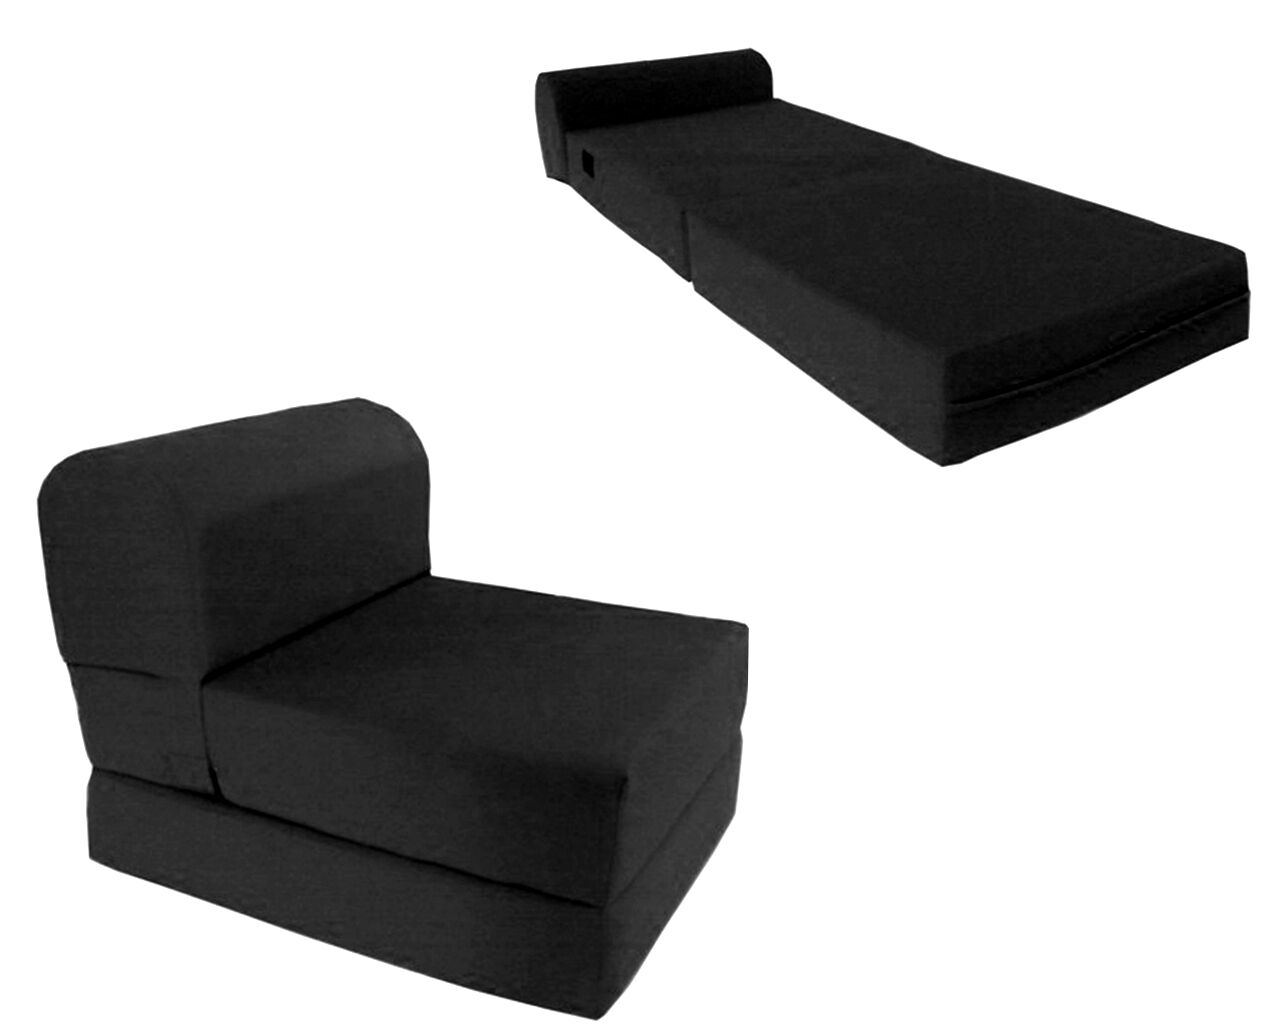 folding chair mattress foam tall back accent chairs black twin size wide sleeper bed 70 quotx36